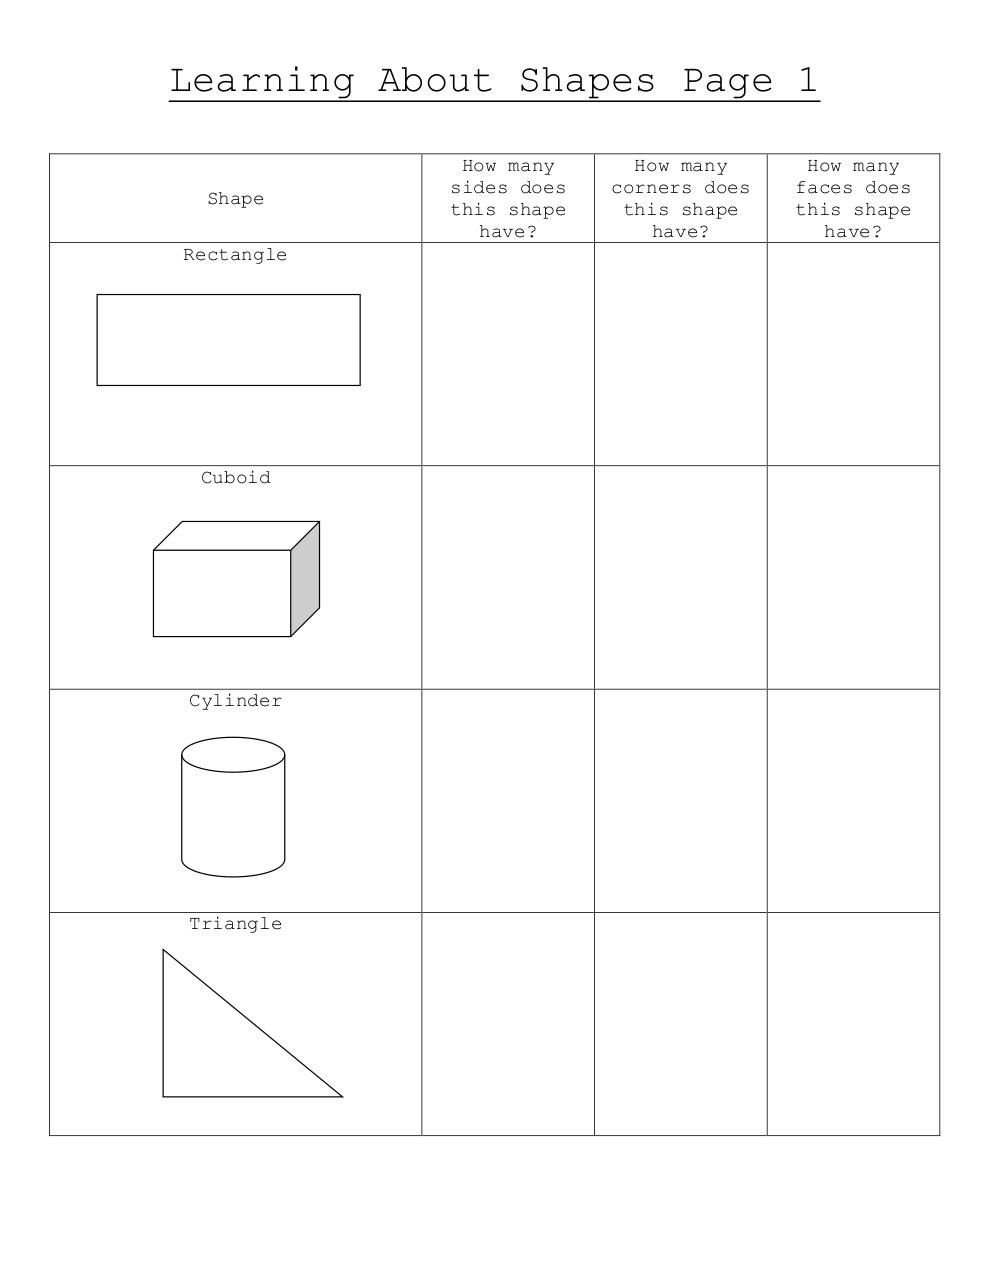 Learning About Shapes Worksheet.pdf - page 1/2